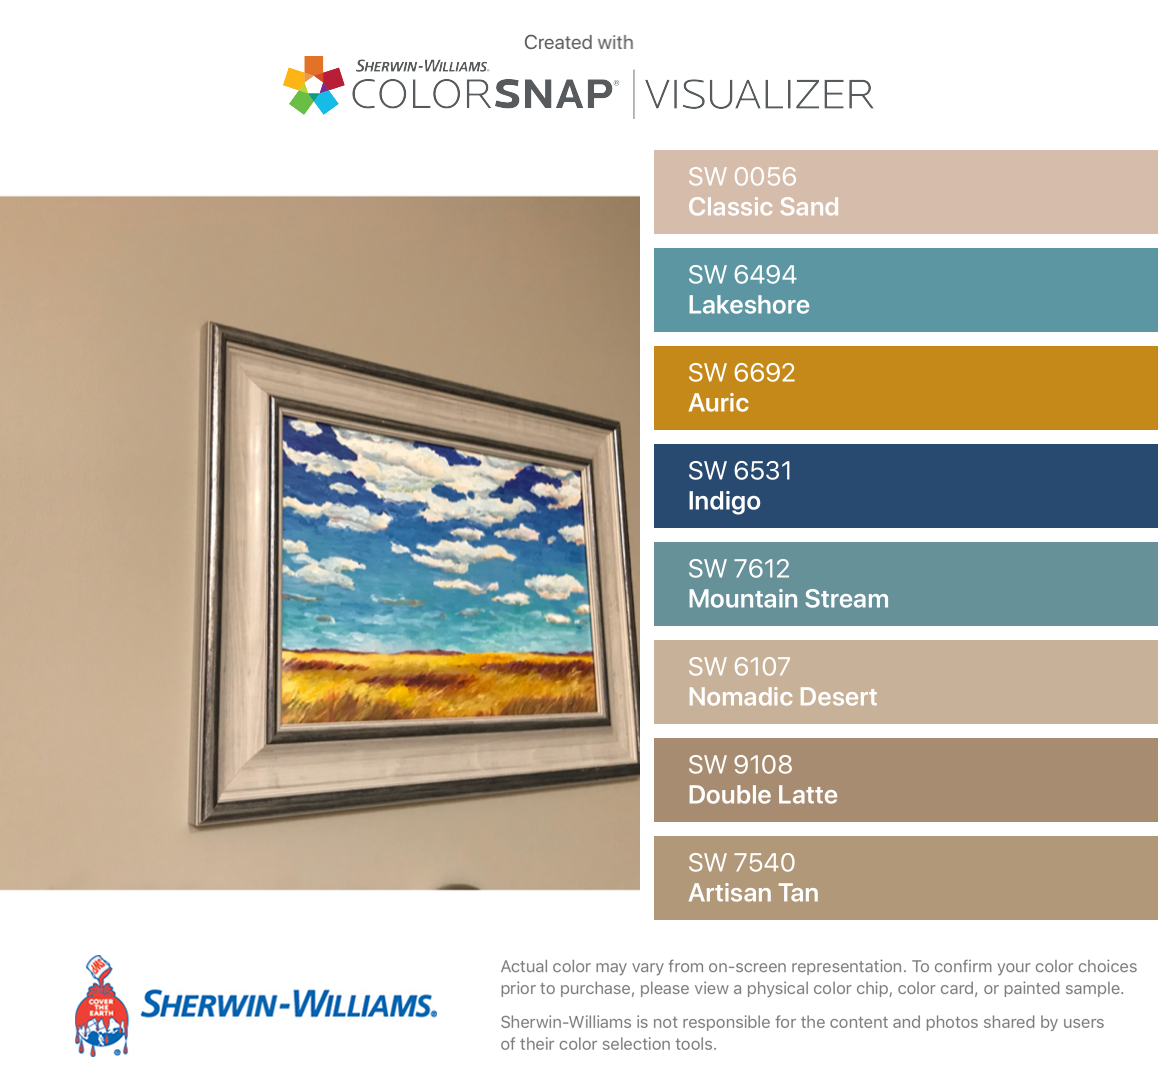 I Found These Colors With Colorsnap Visualizer For Iphone By Sherwin Williams Classic Sand Sw 0056 Lakeshore Sw 6494 Color House Colors Sherwin Williams